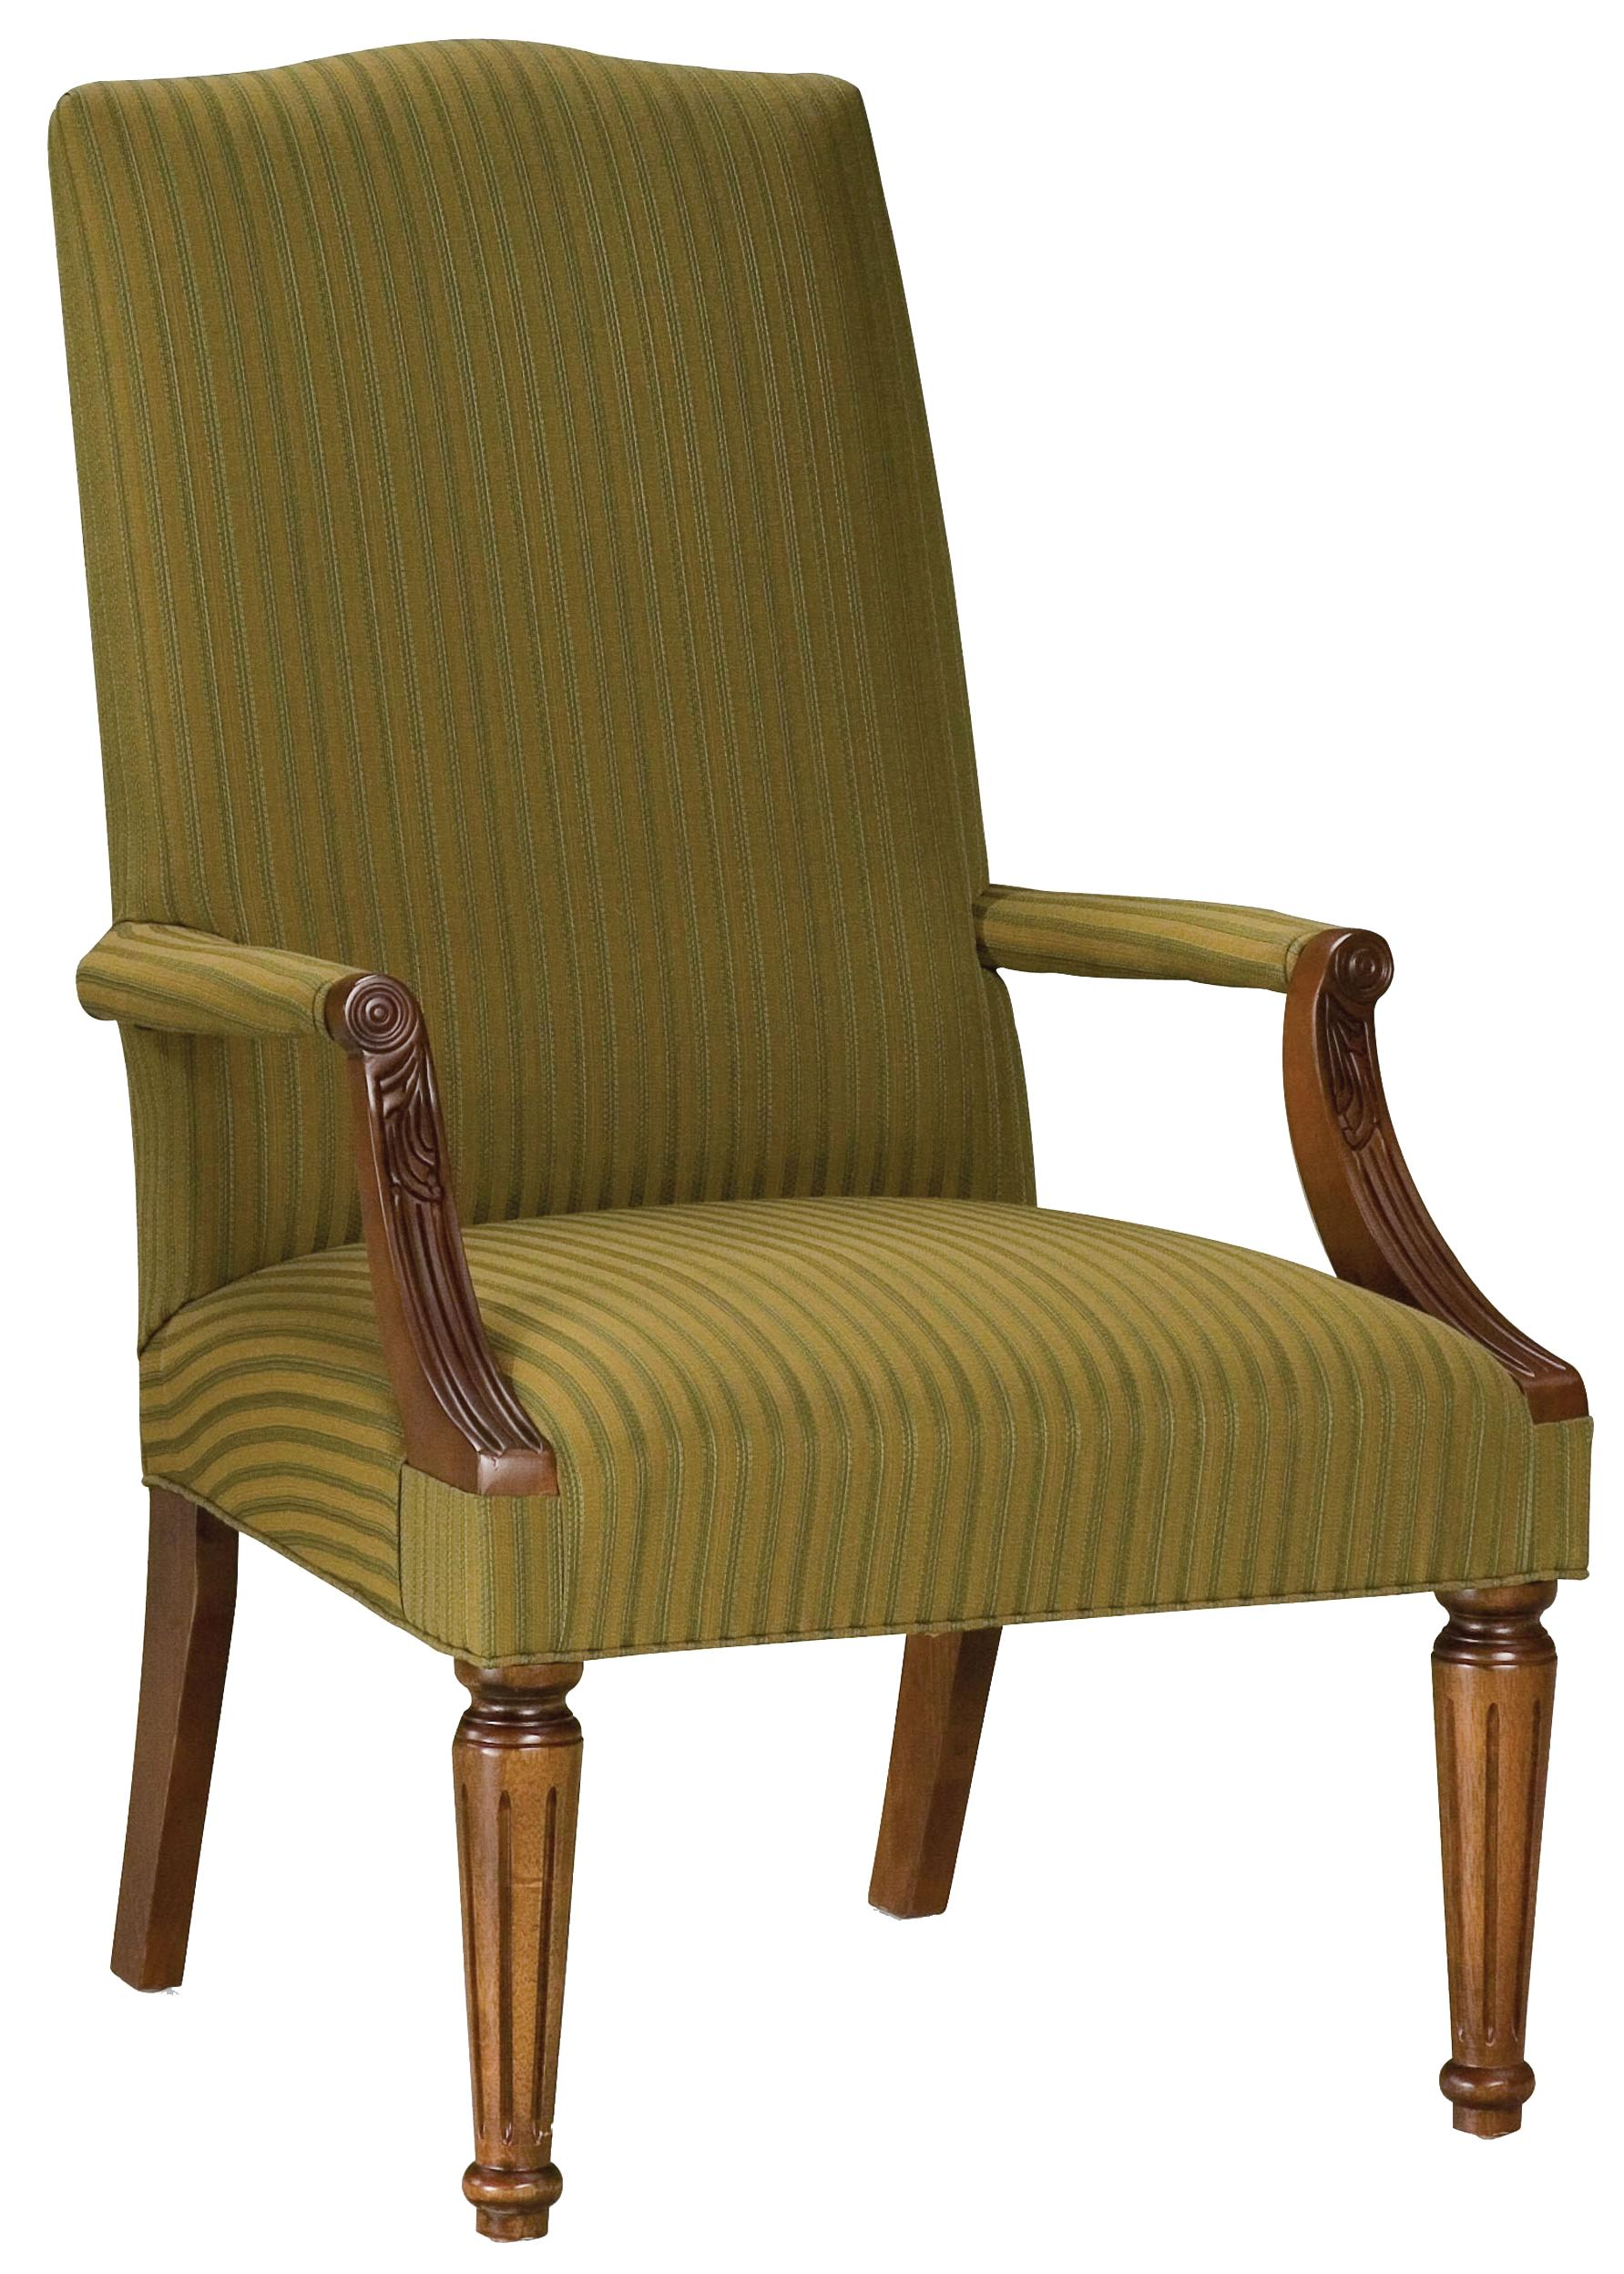 Fairfield Chairs Transitional Chair - Item Number: 5463-01